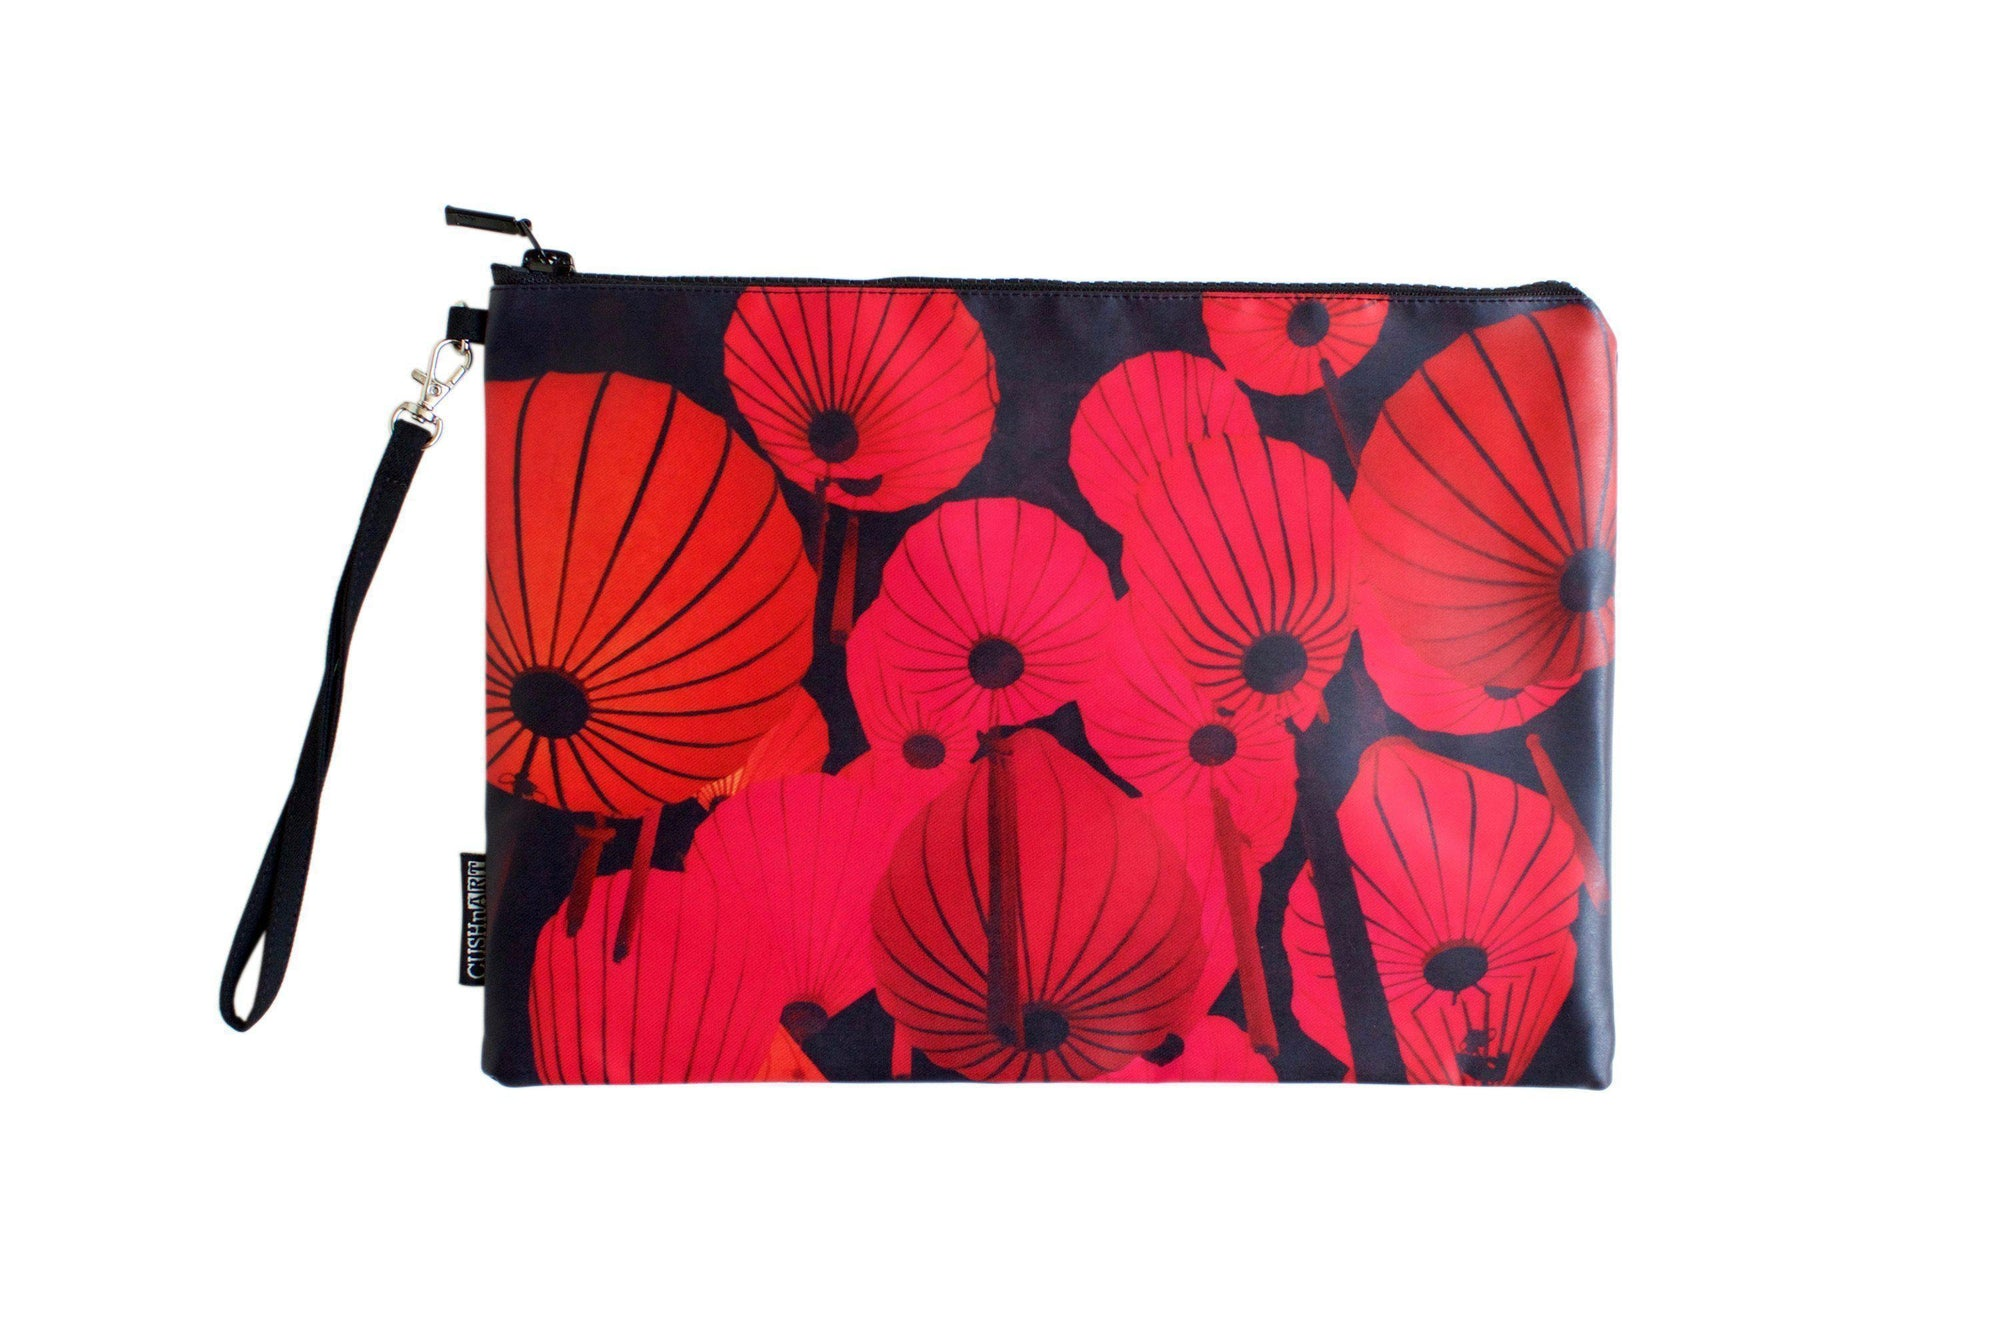 Red Lantern Water Resistant Clutch